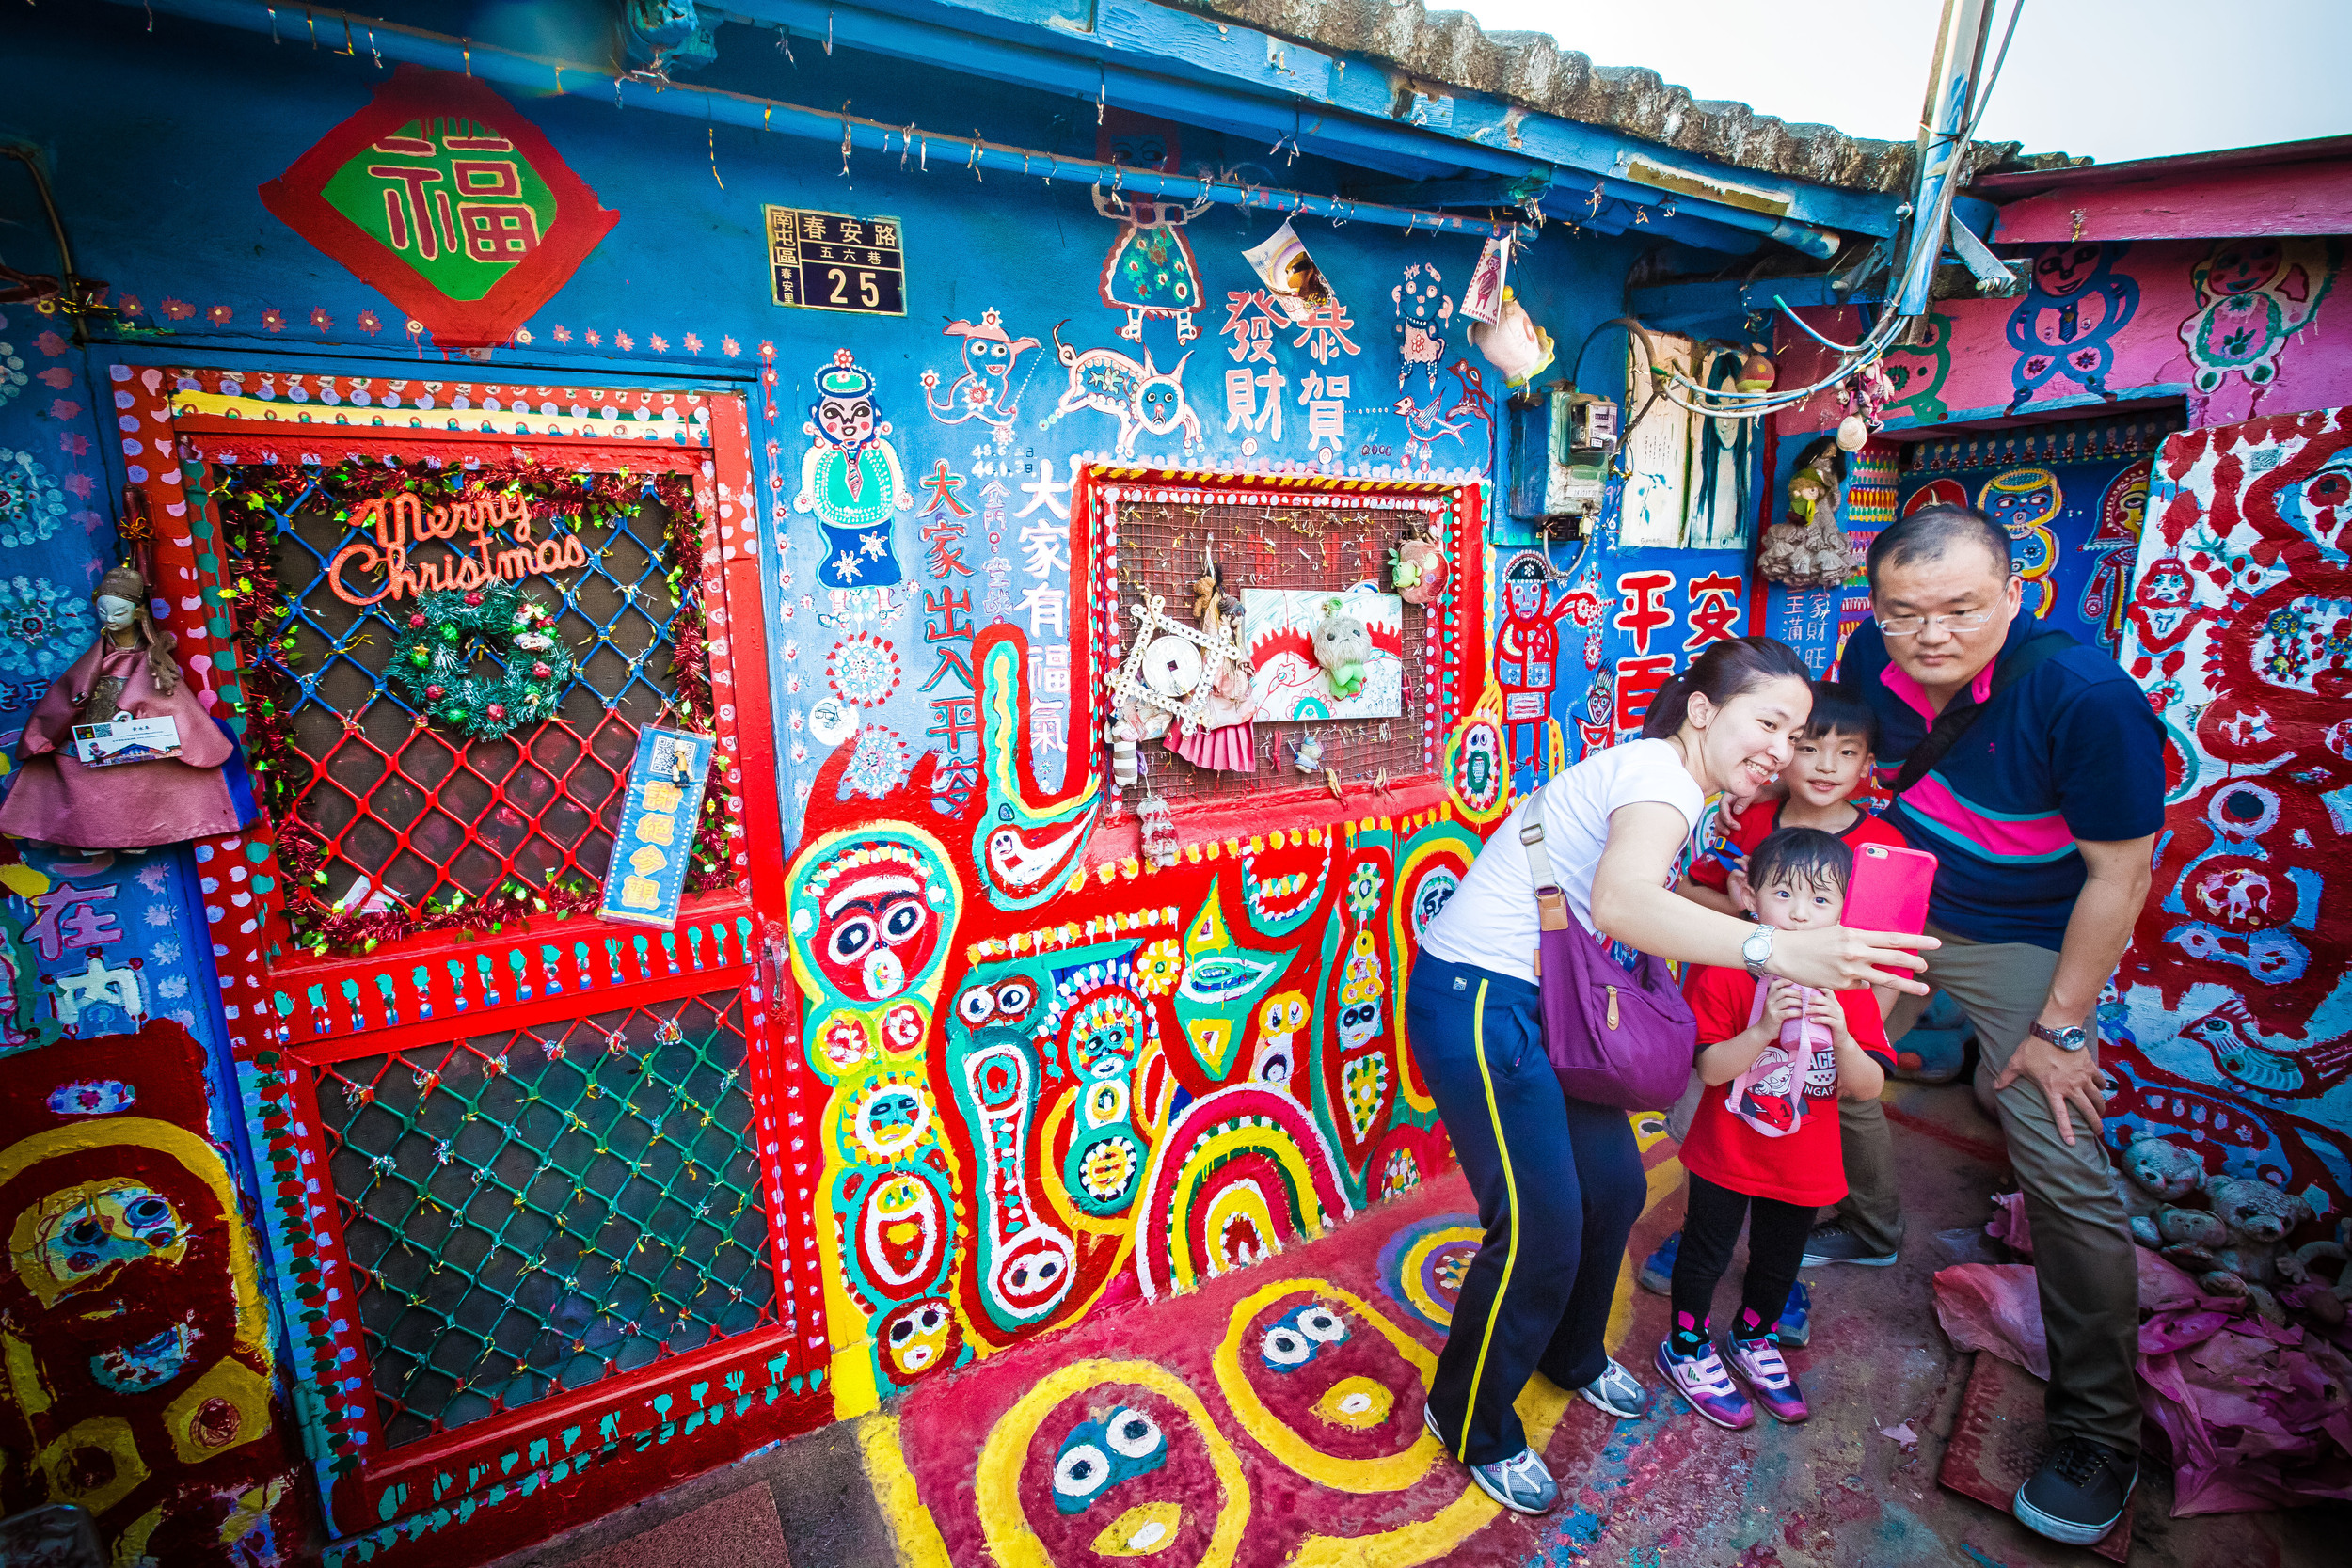 A family taking some selfies at the Rainbow Village.